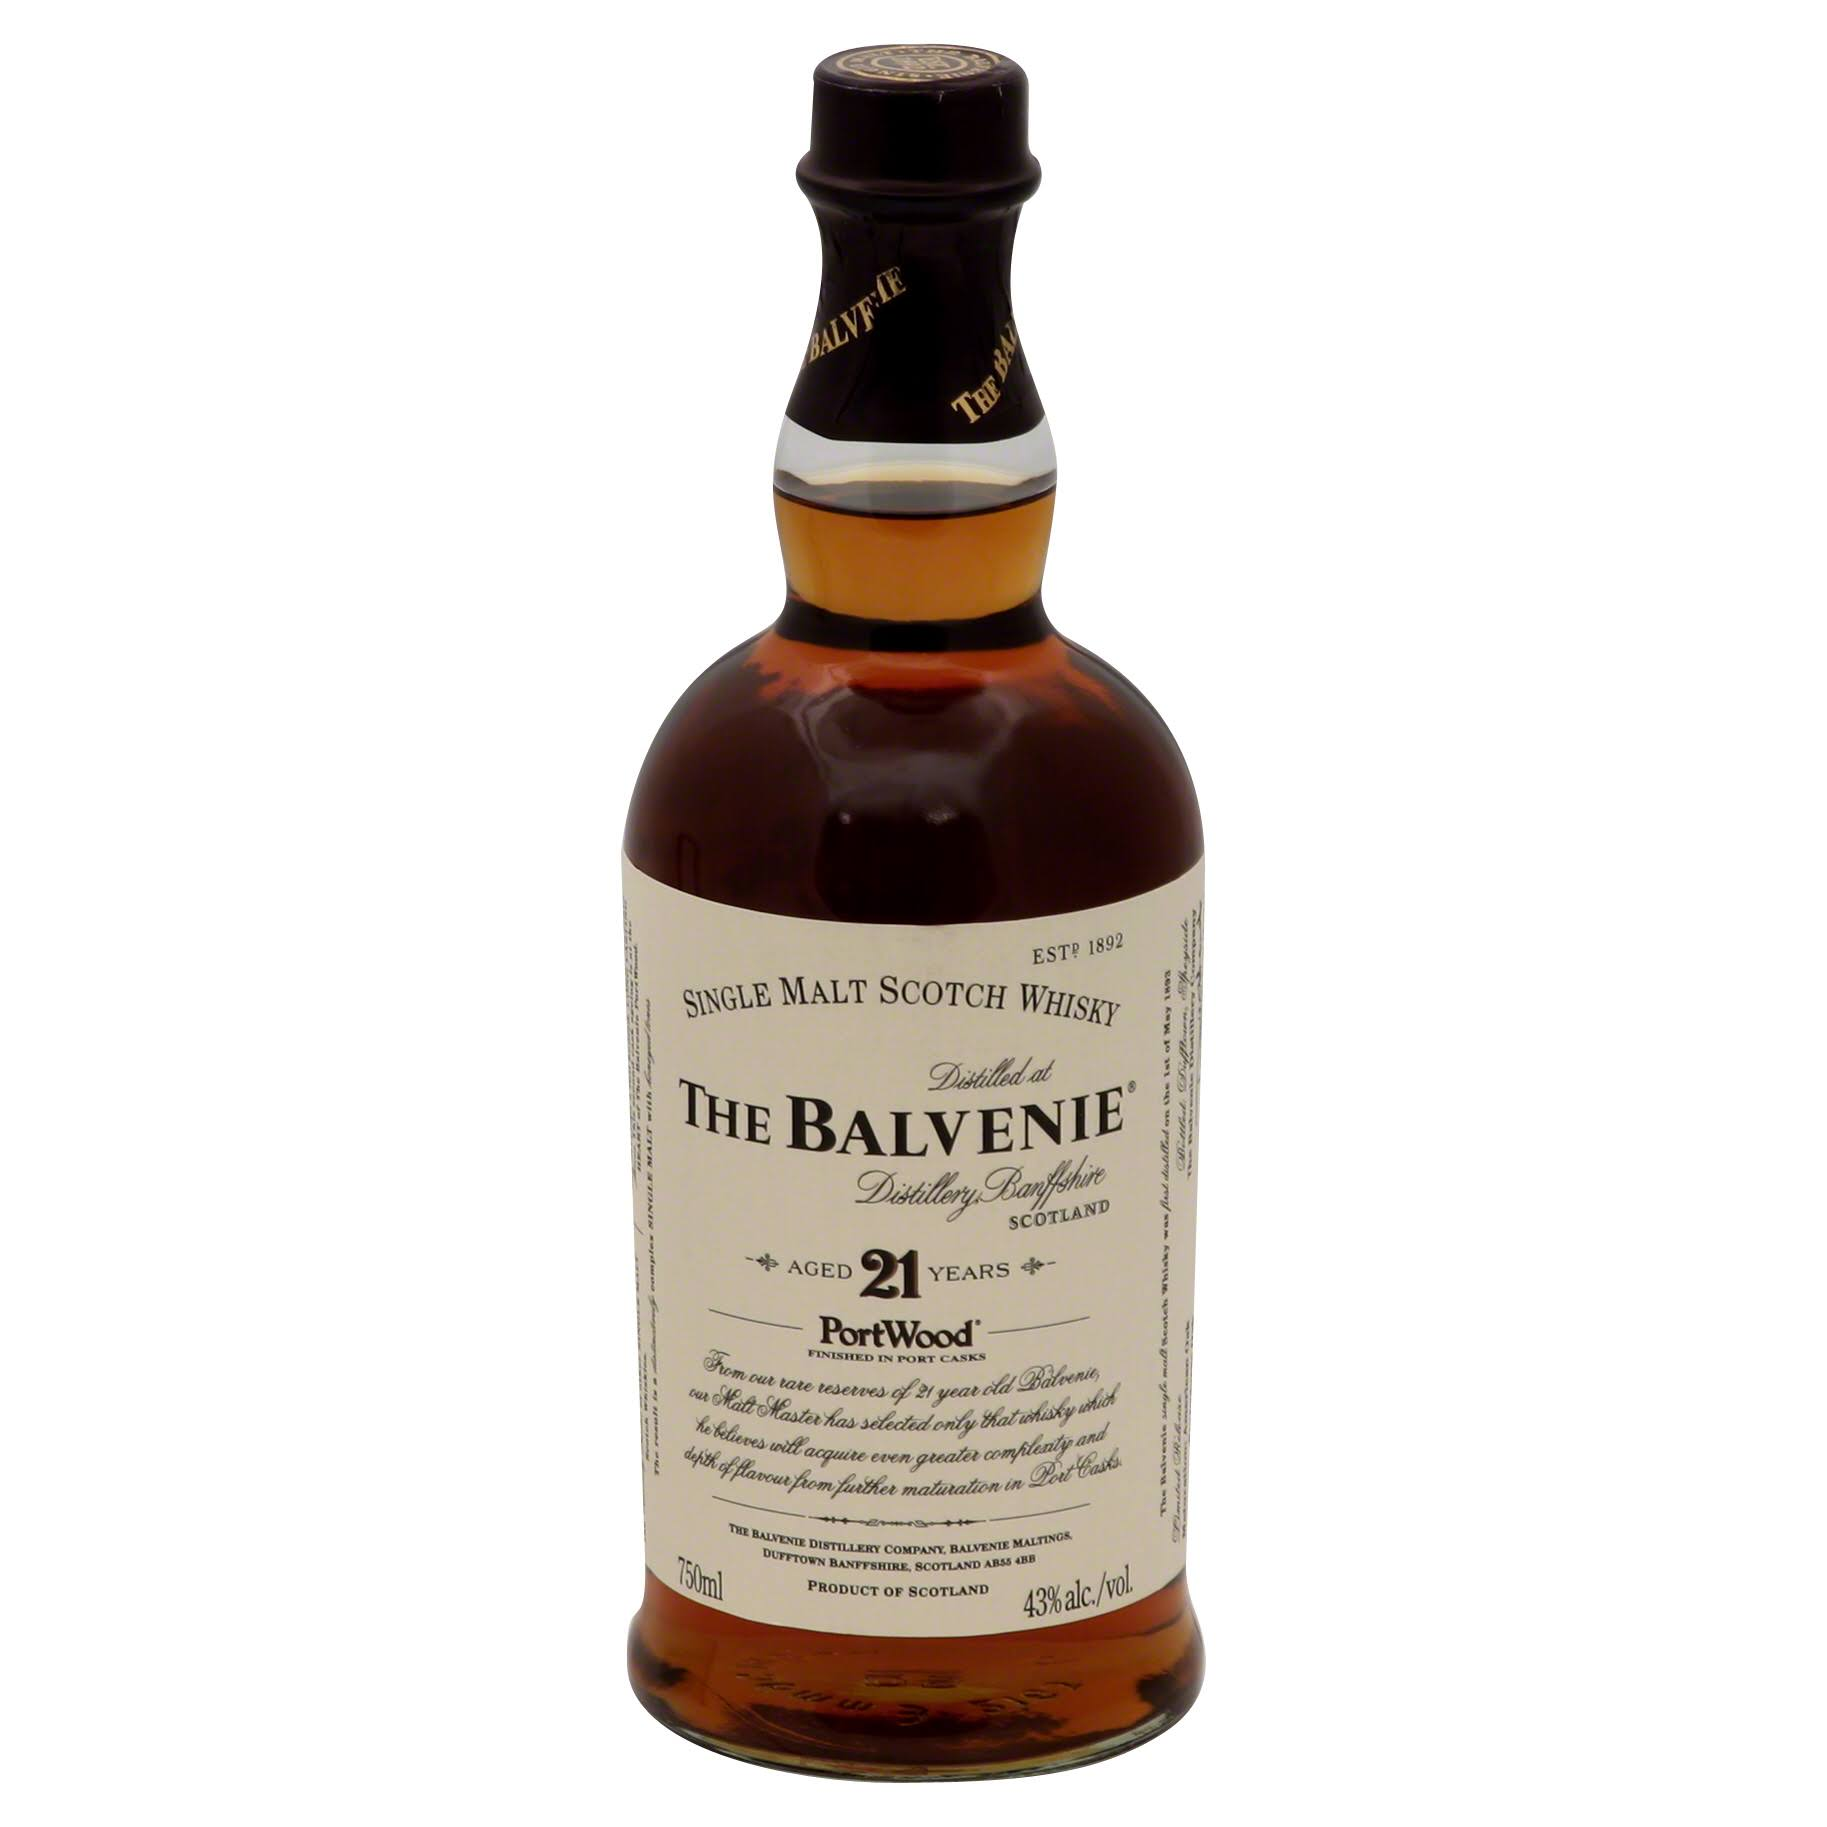 Balvenie Portwood Single Malt Scotch